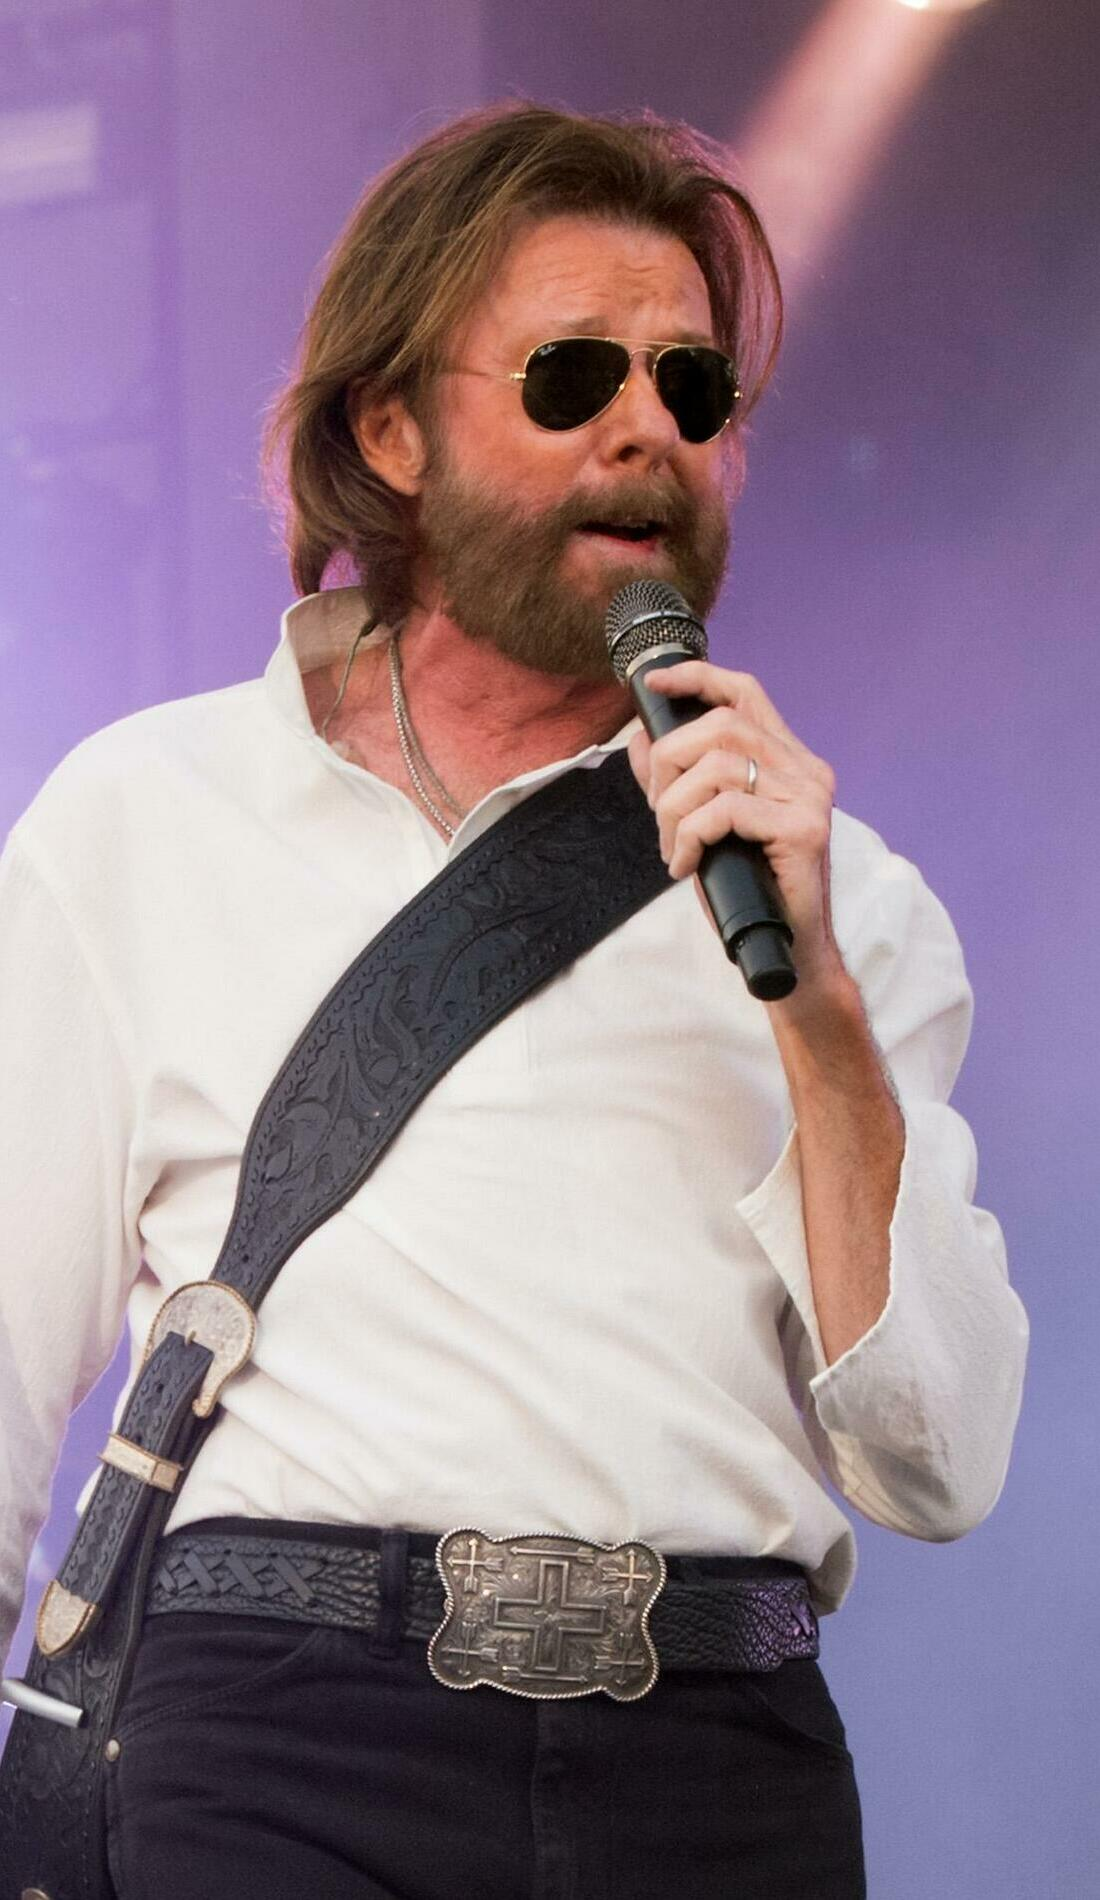 A Ronnie Dunn live event